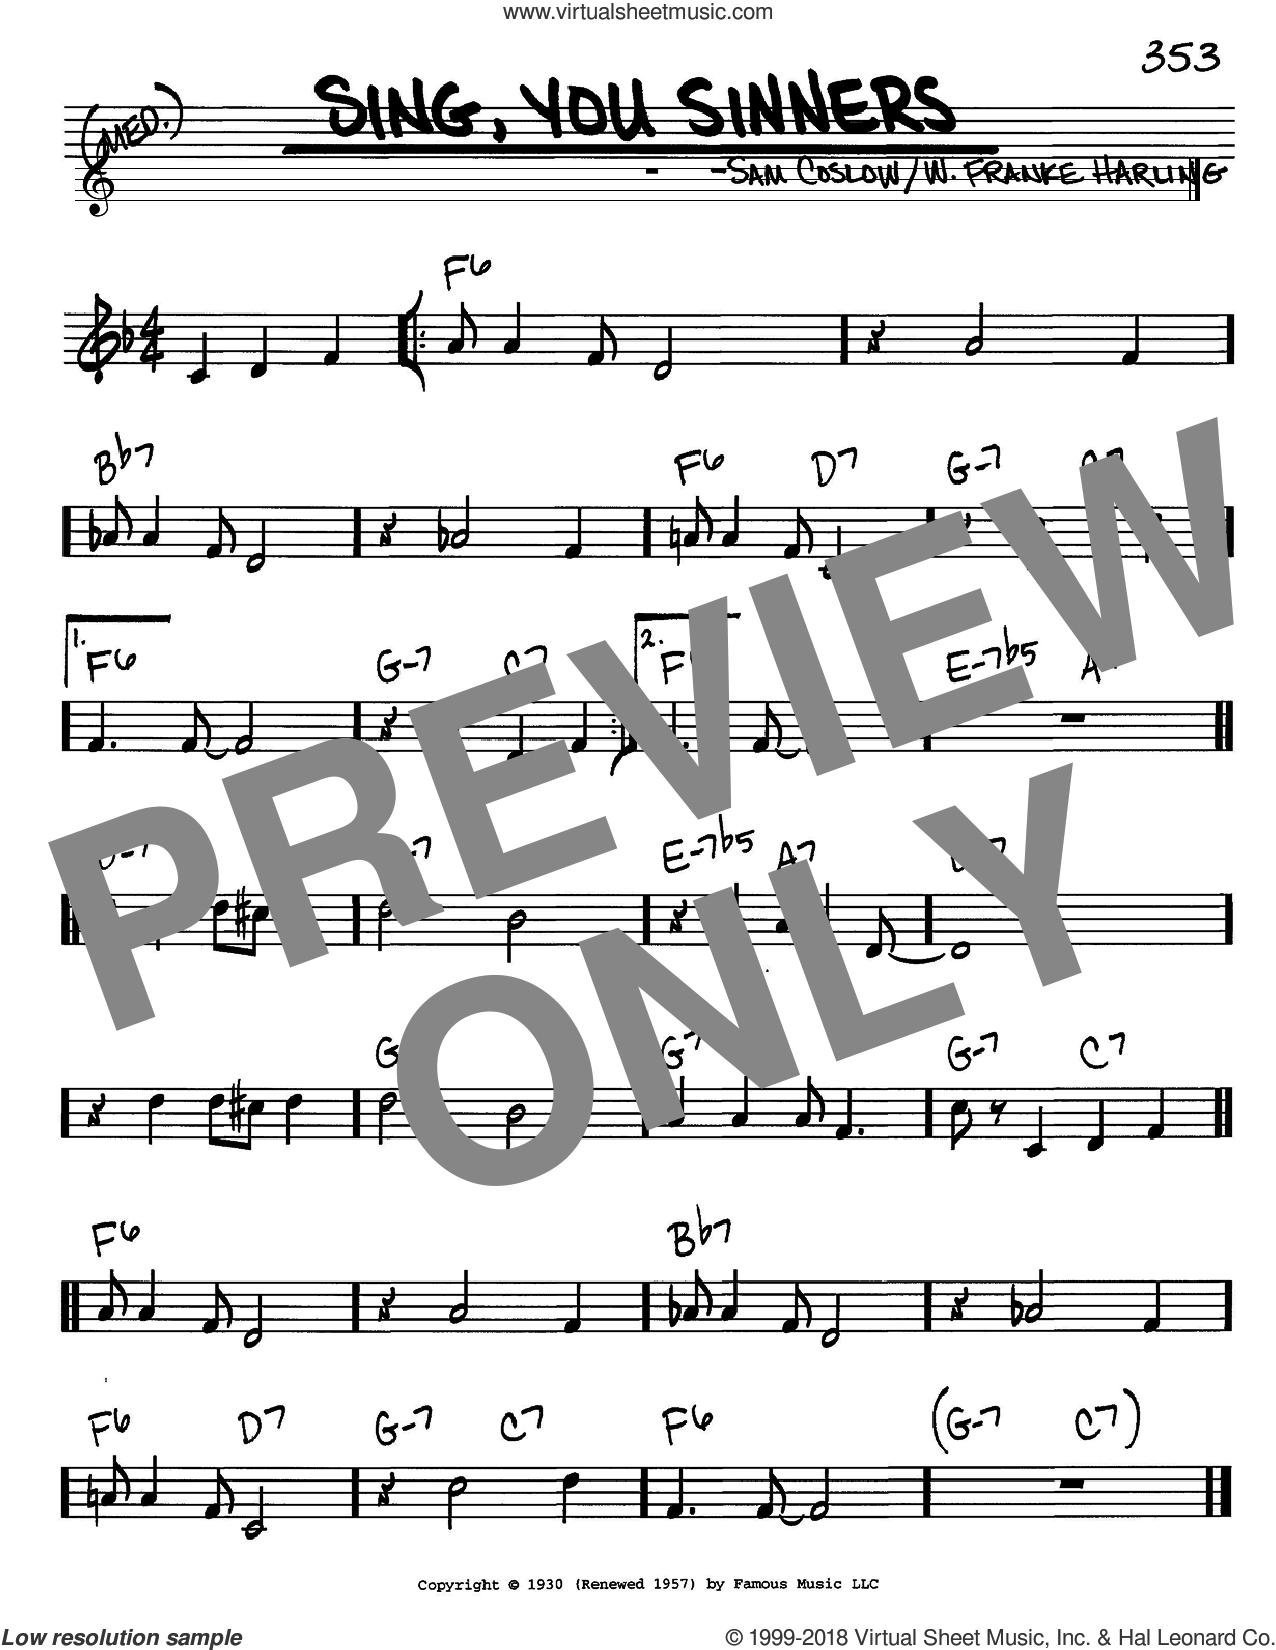 Sing, You Sinners sheet music for voice and other instruments (C) by W. Franke Harling